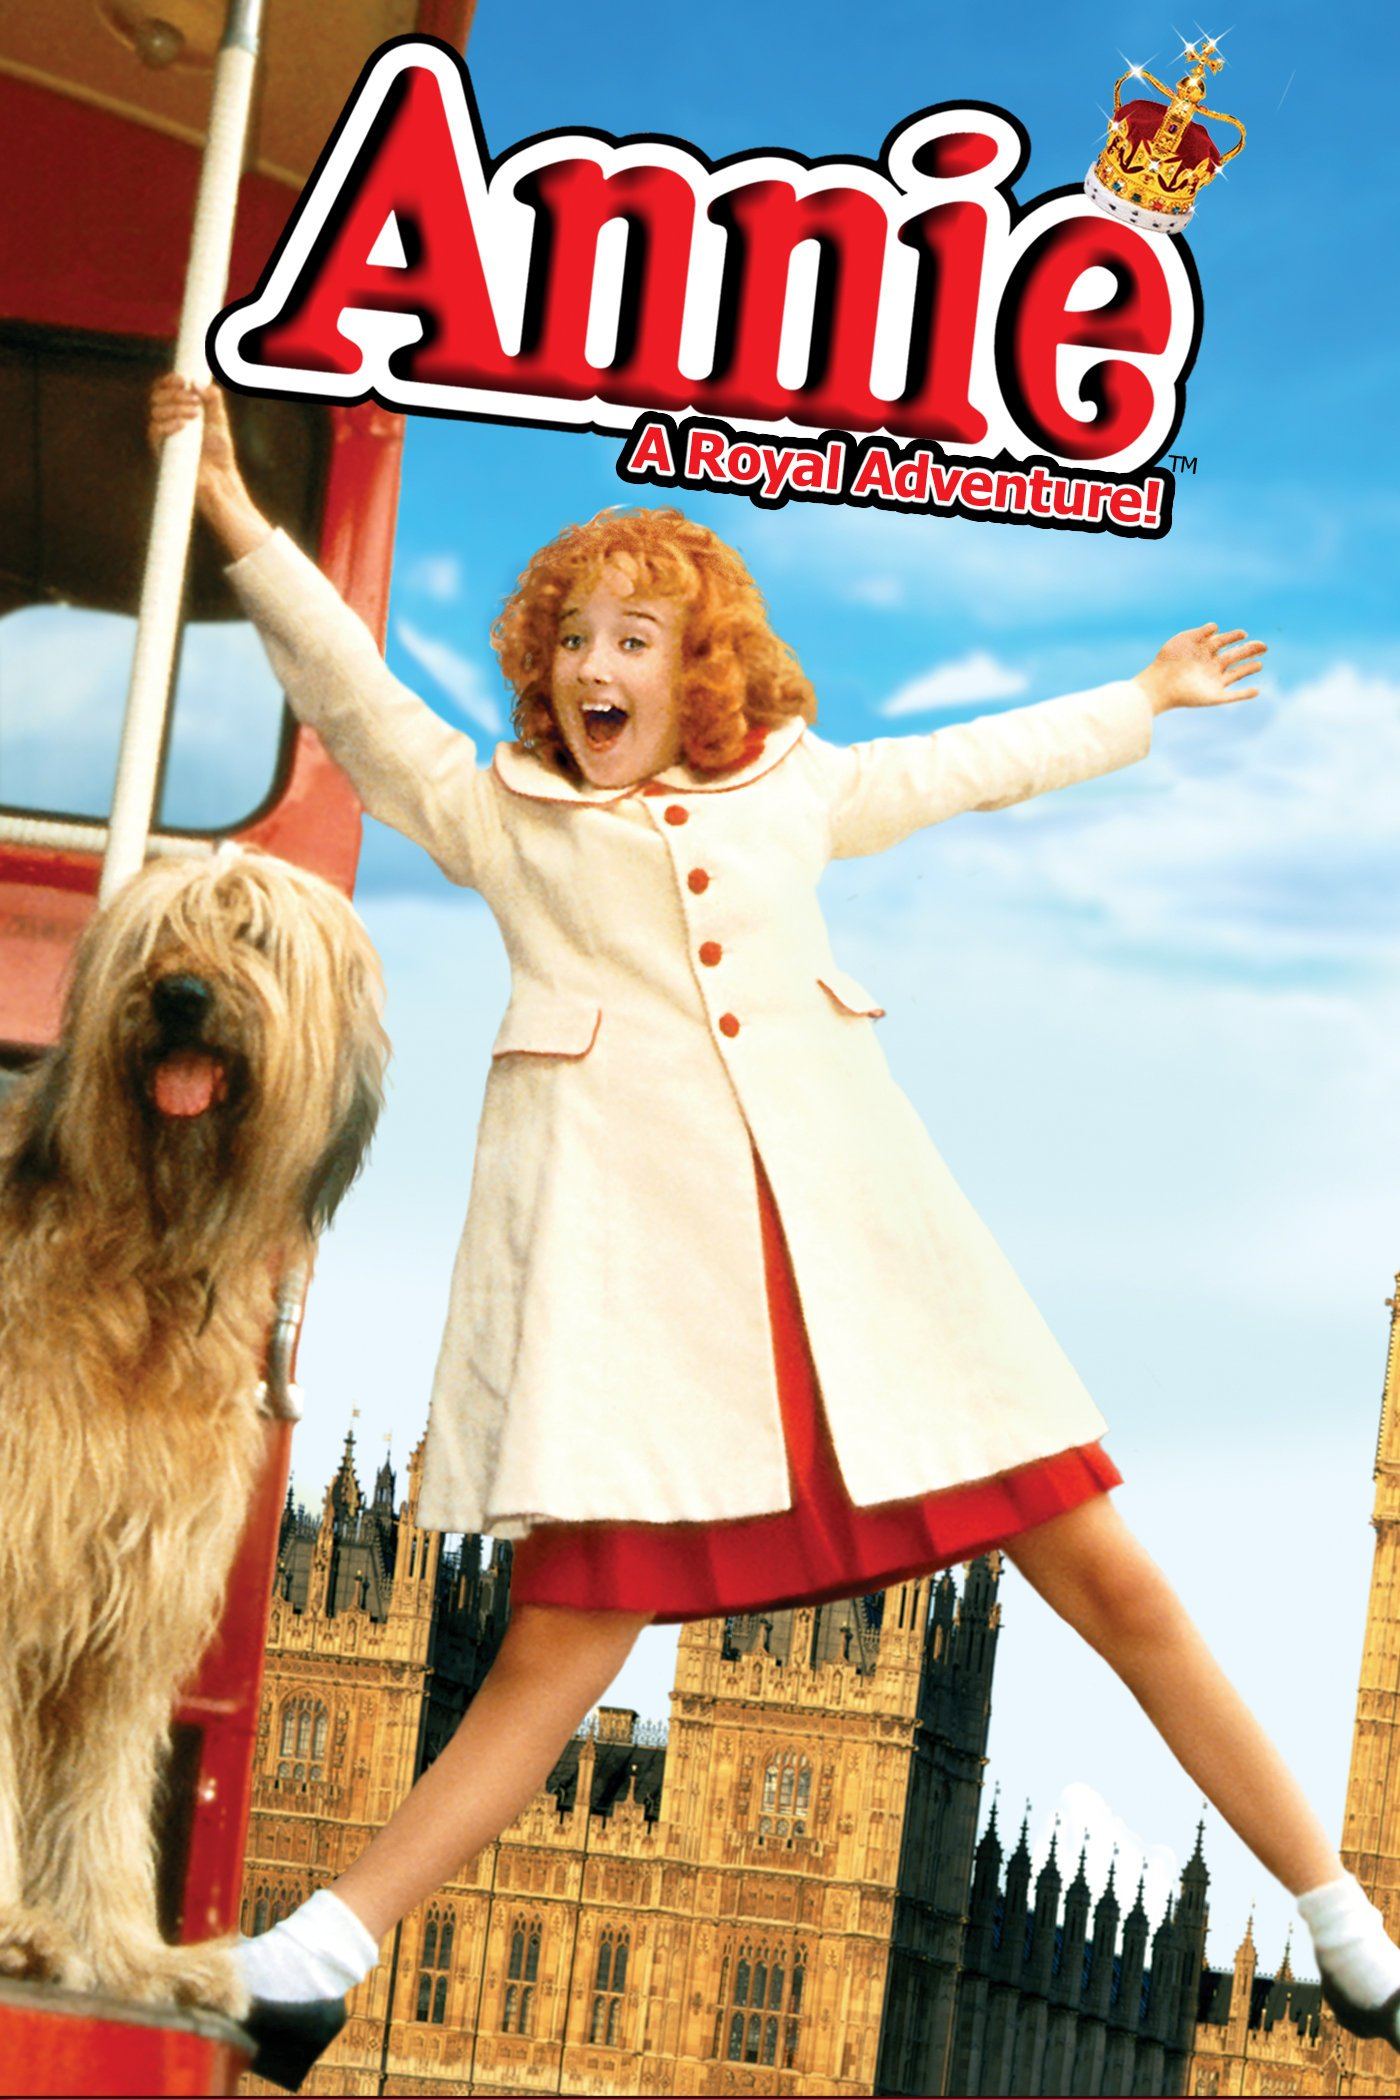 Annie: A Royal Adventure! hd on soap2day